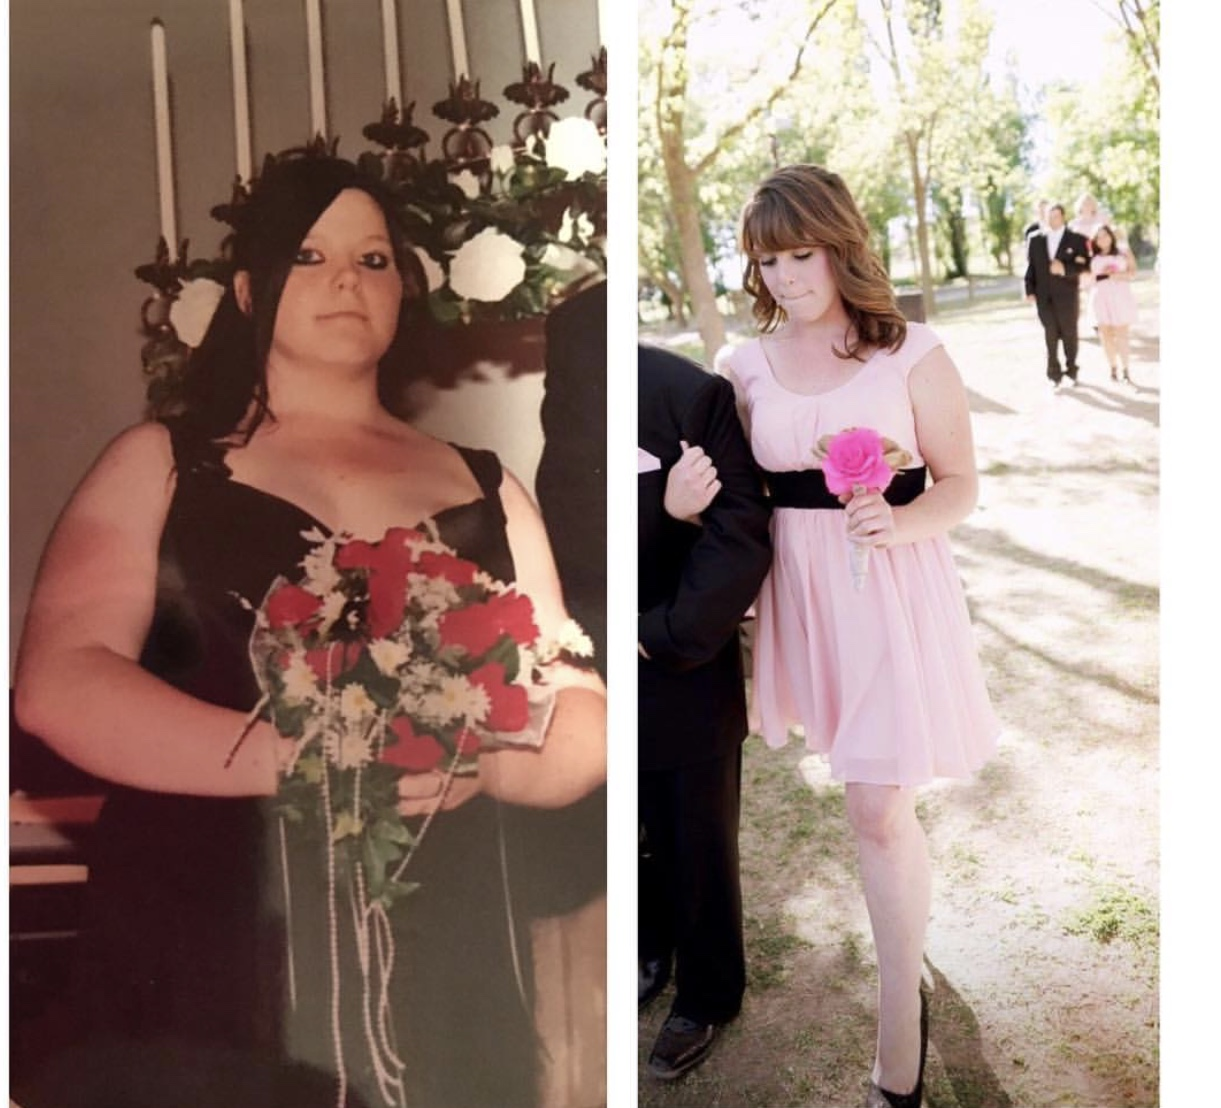 Gina lost 90 pounds! See my before and after weight loss pictures, and read amazing weight loss success stories from real women and their best weight loss diet plans and programs. Motivation to lose weight with walking and inspiration from before and after weightloss pics and photos.